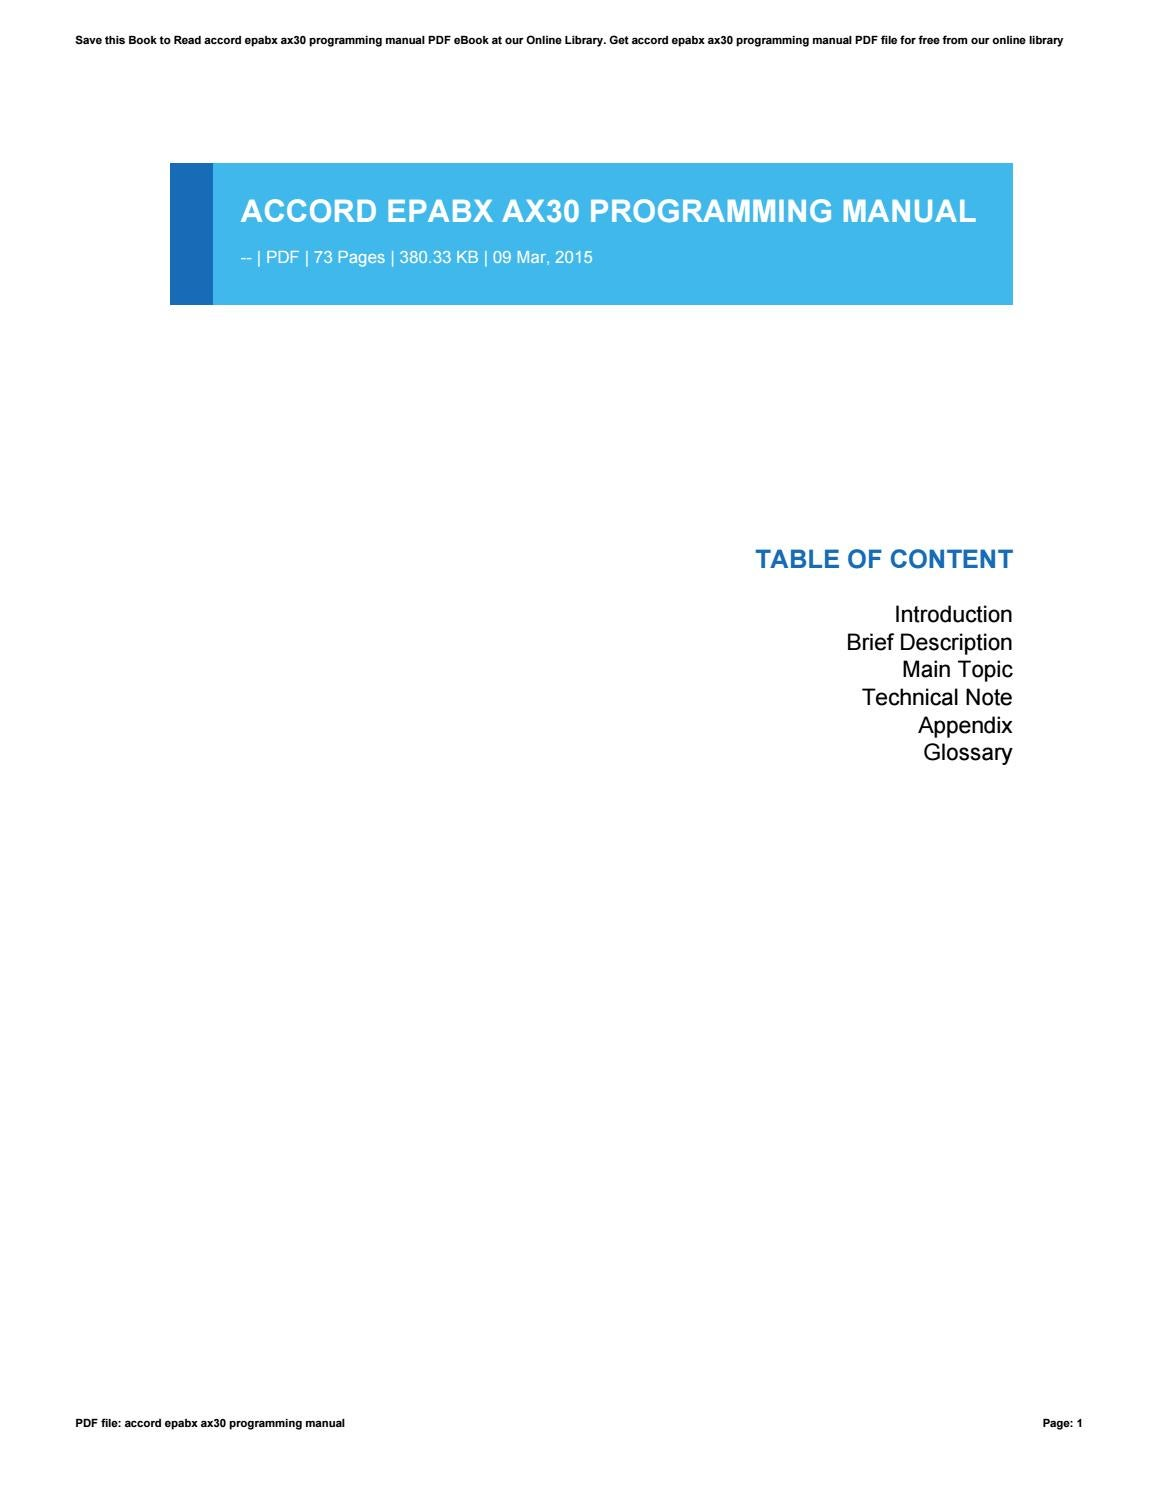 b2156f8cbba ... Array - accord epabx ax30 programming manual by ty223 issuu rh issuu ...